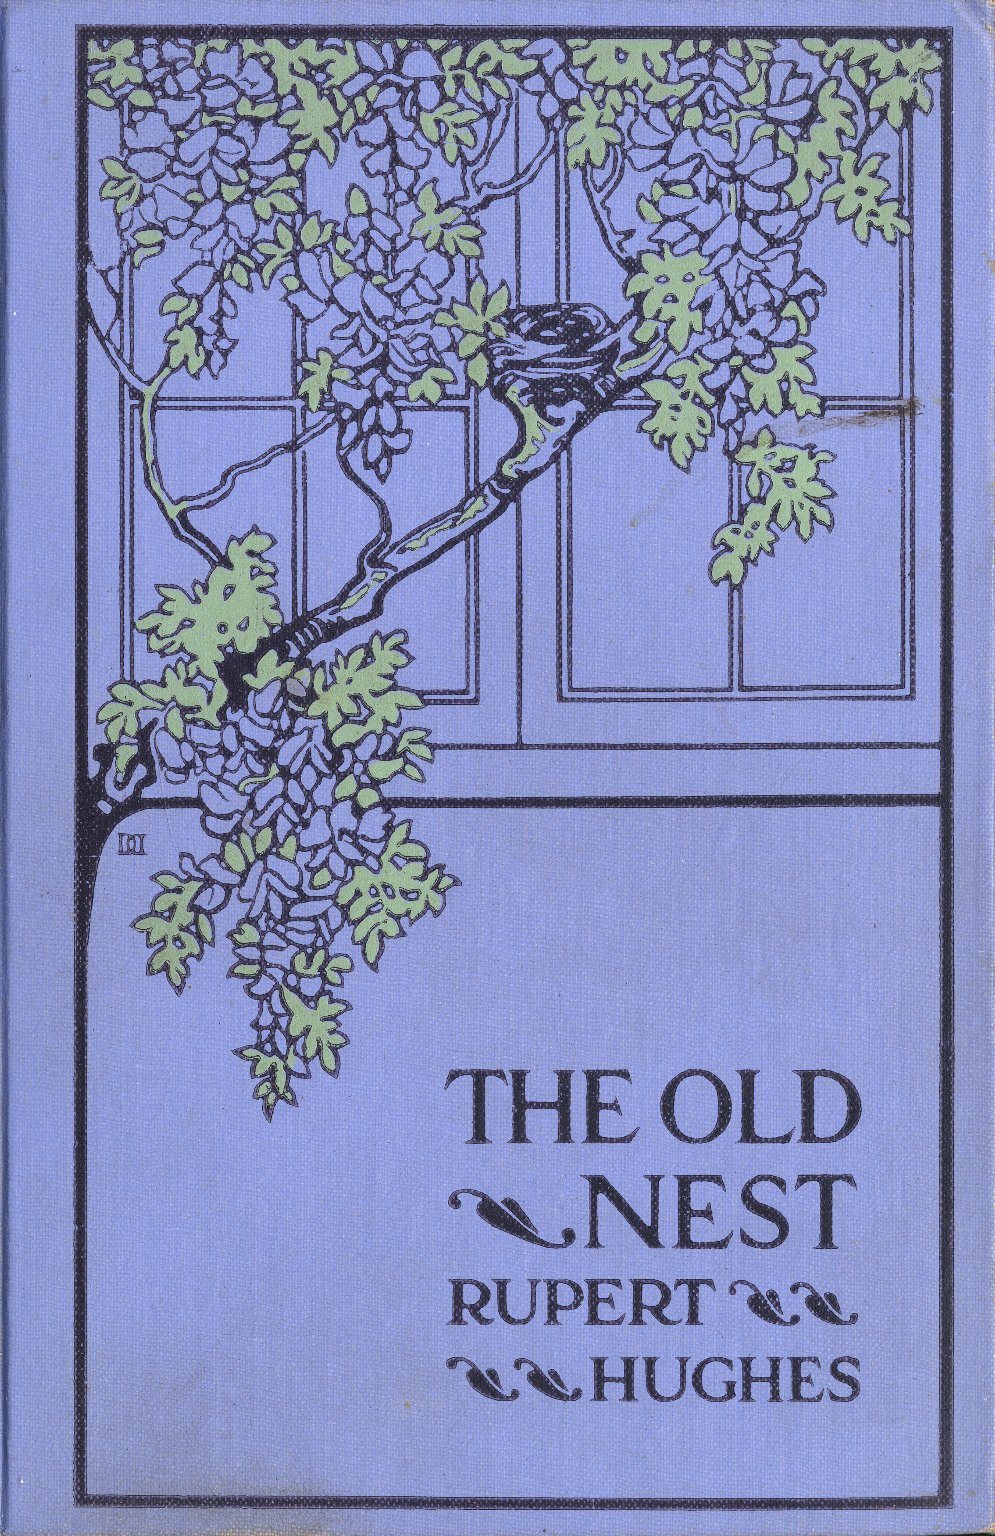 The old nest